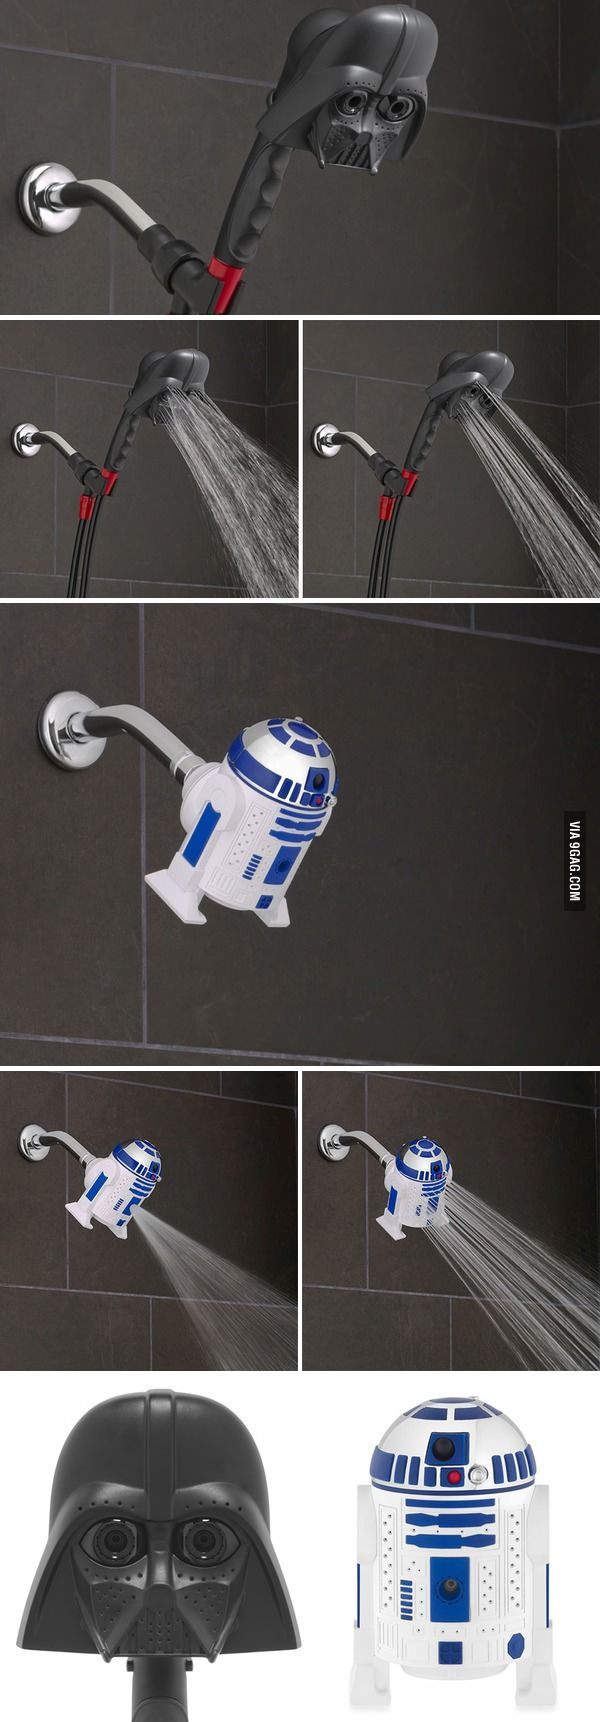 Star Wars Showerheads Will Let You Bathe In Vader's Tears - 9GAG